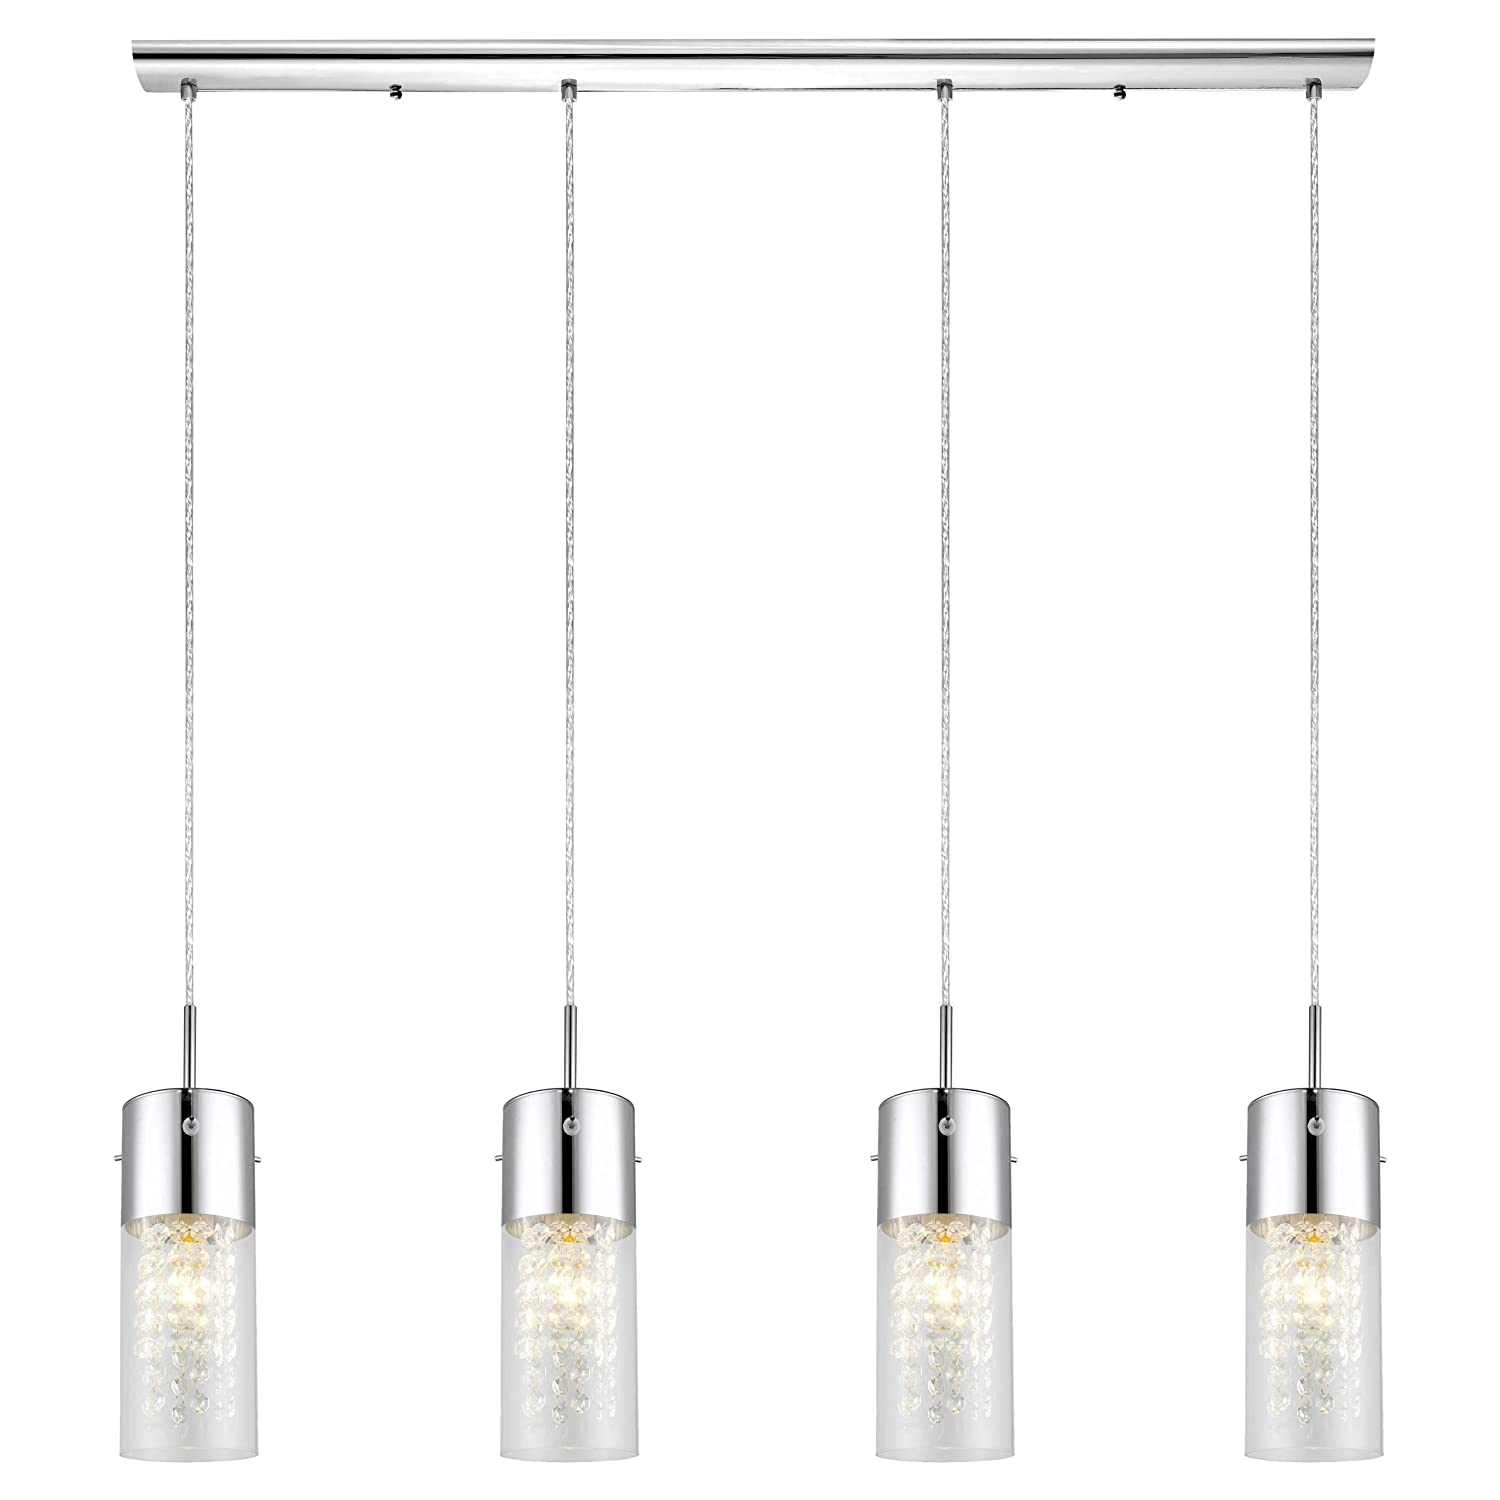 pendant olvero lights lighting multi light eglo satinated led glass drop image stylish with shades ceiling